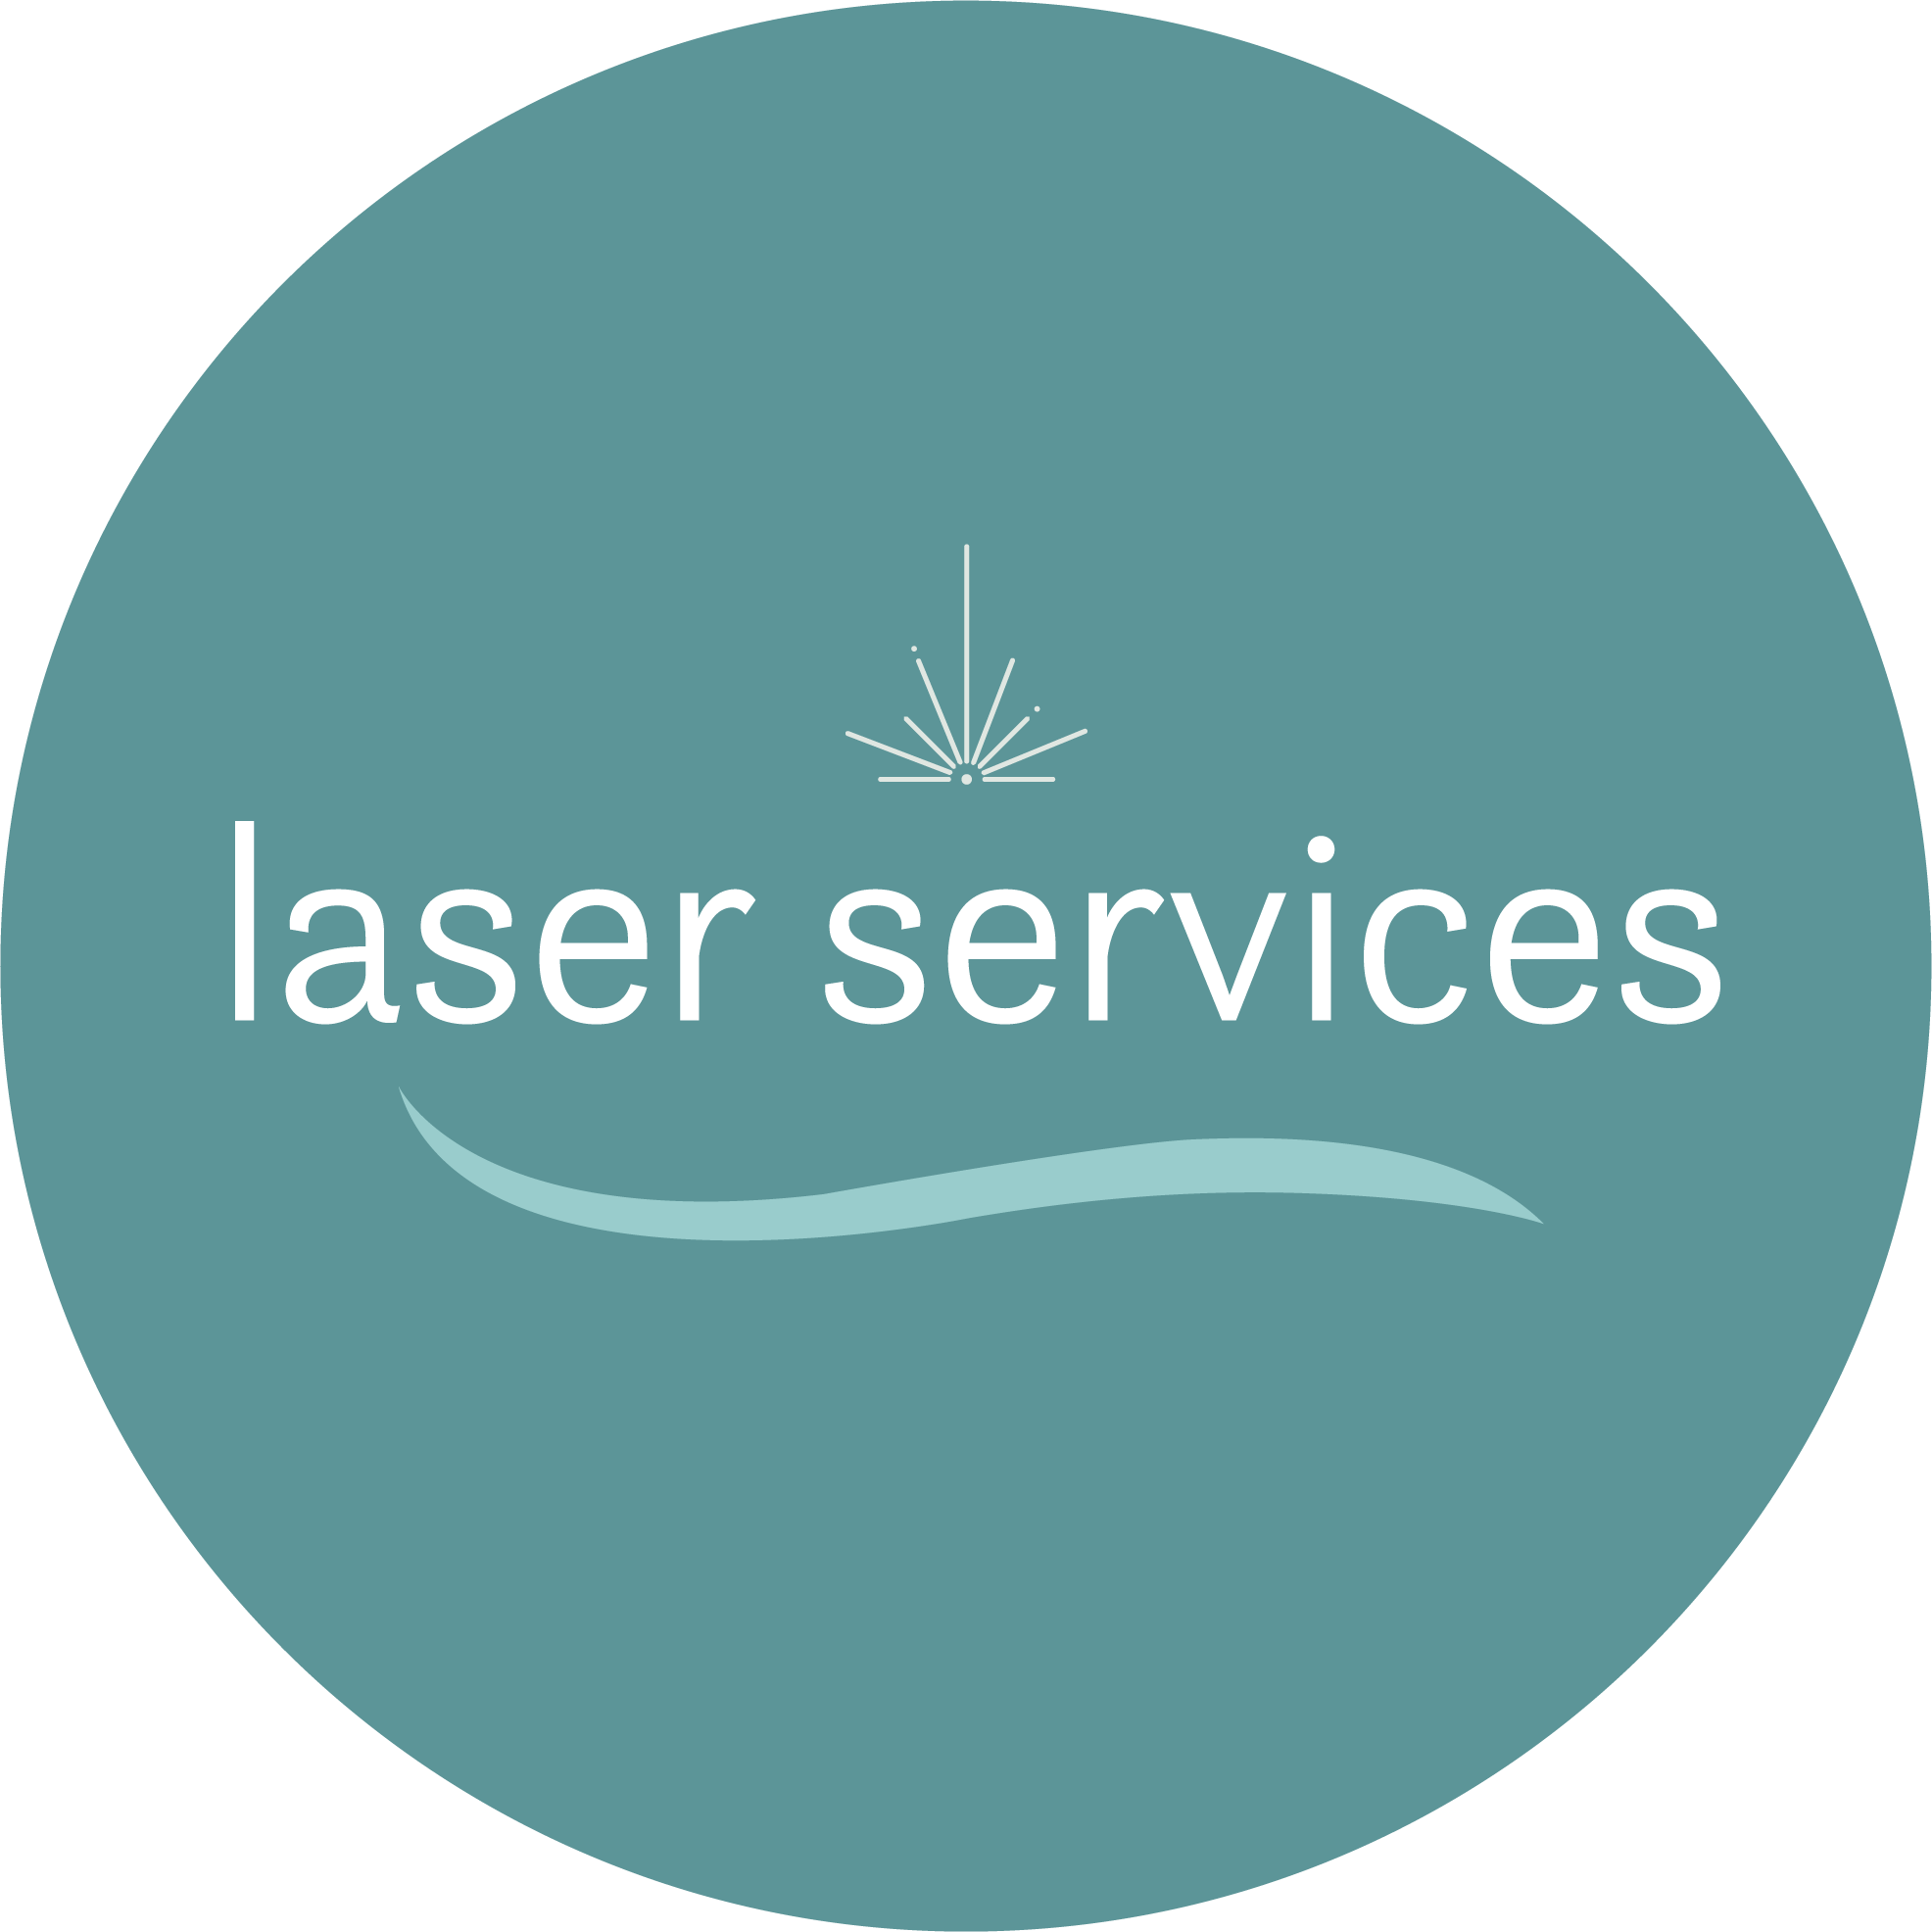 laser-services-circle.png